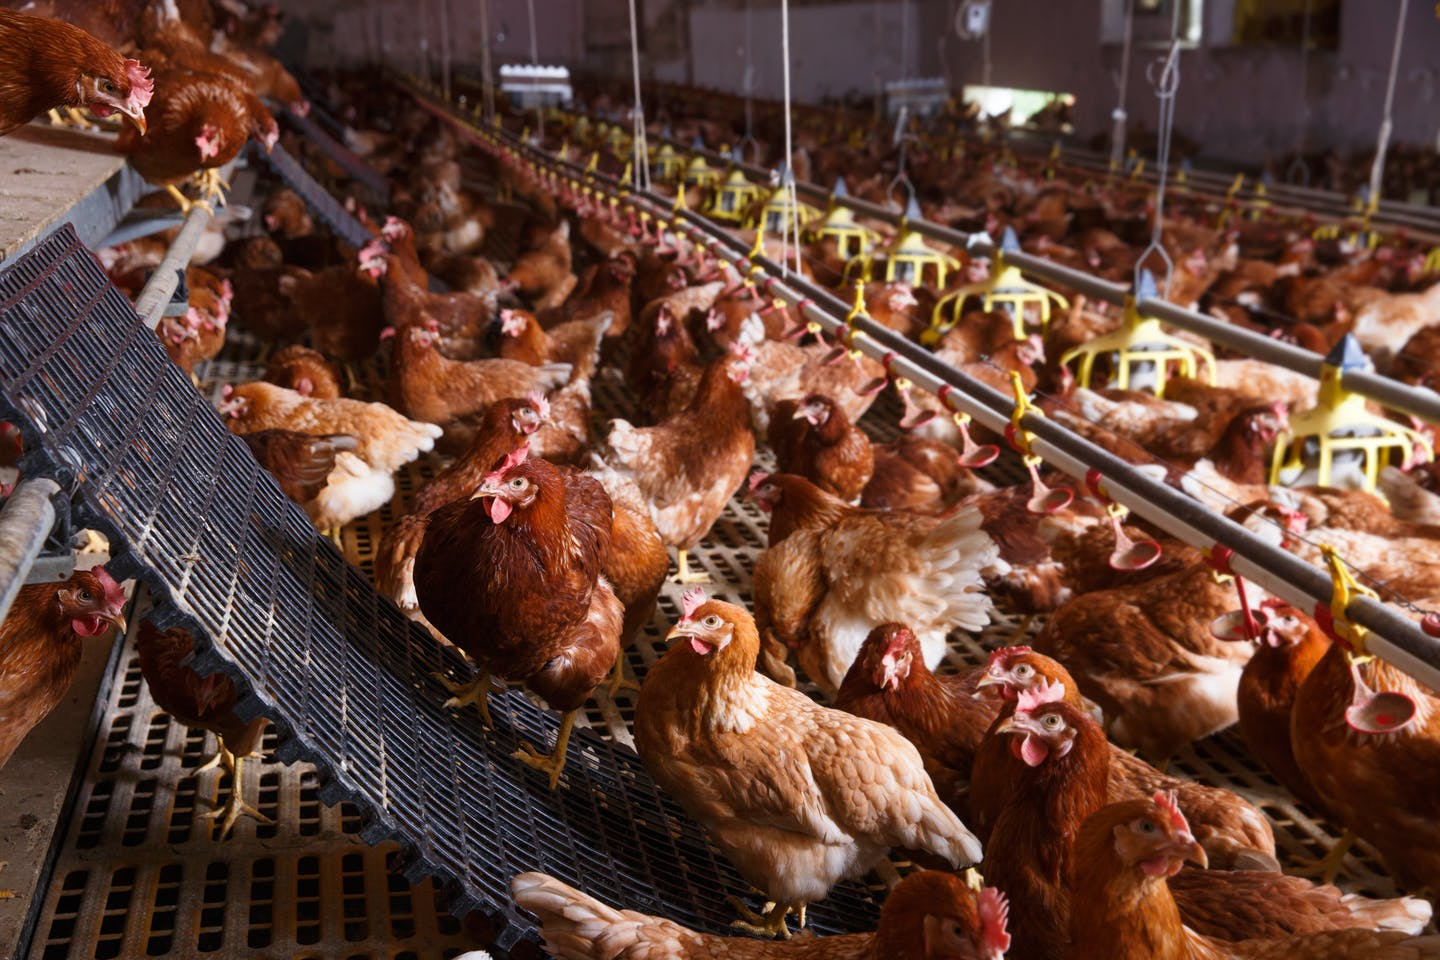 Cage free farm chickens